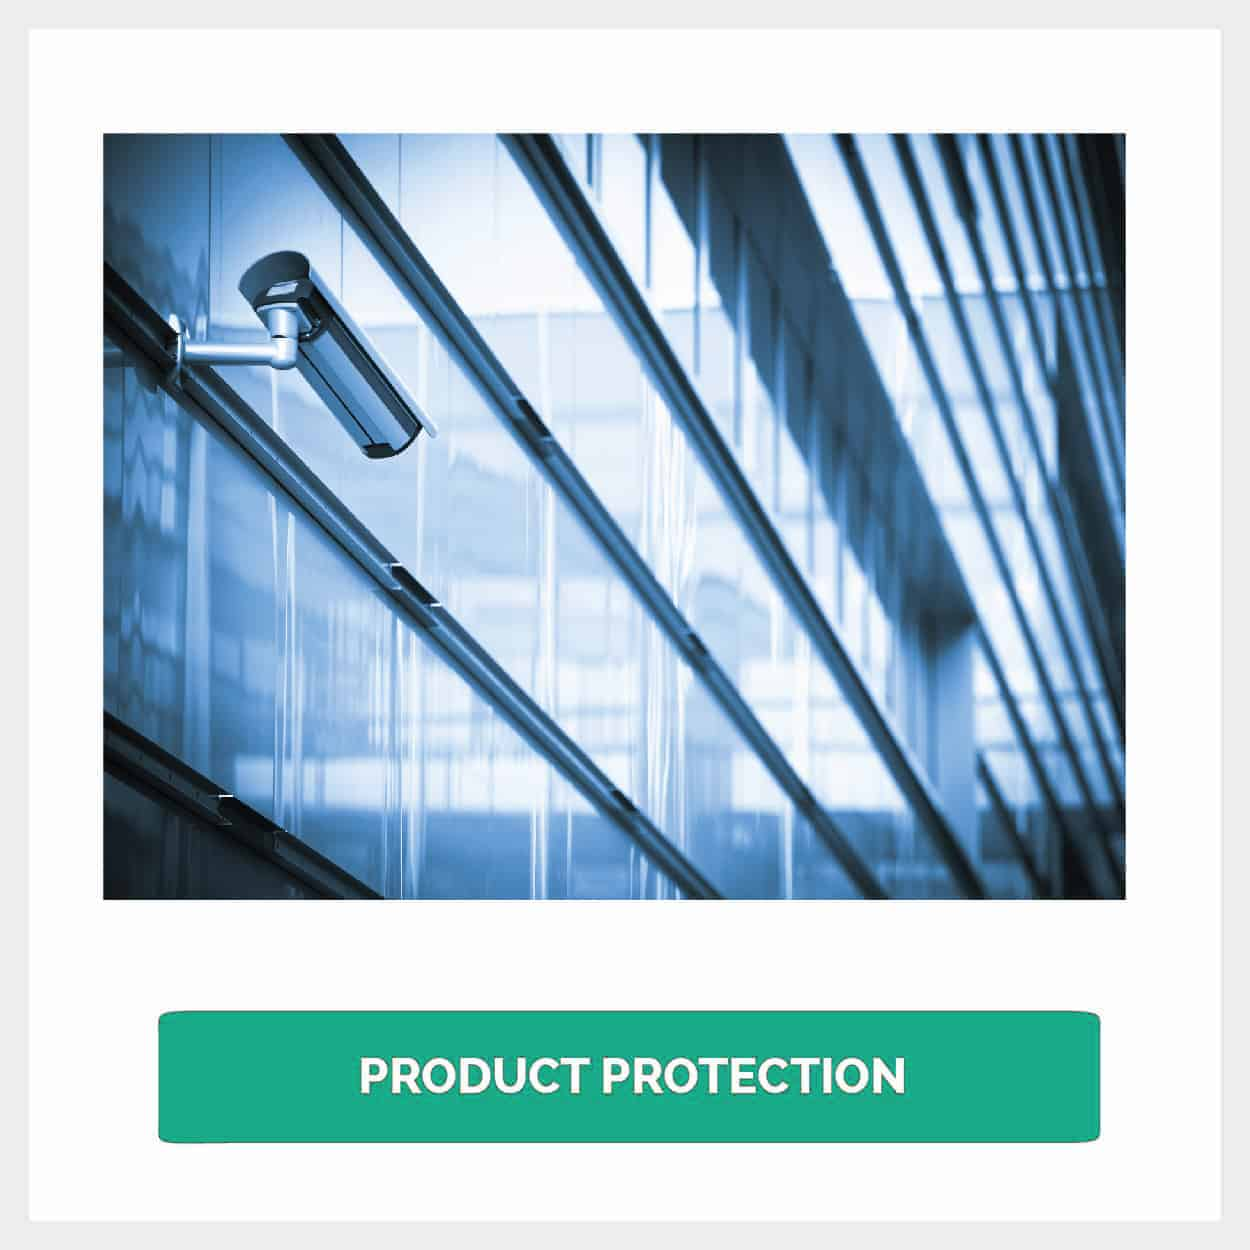 Product Protection